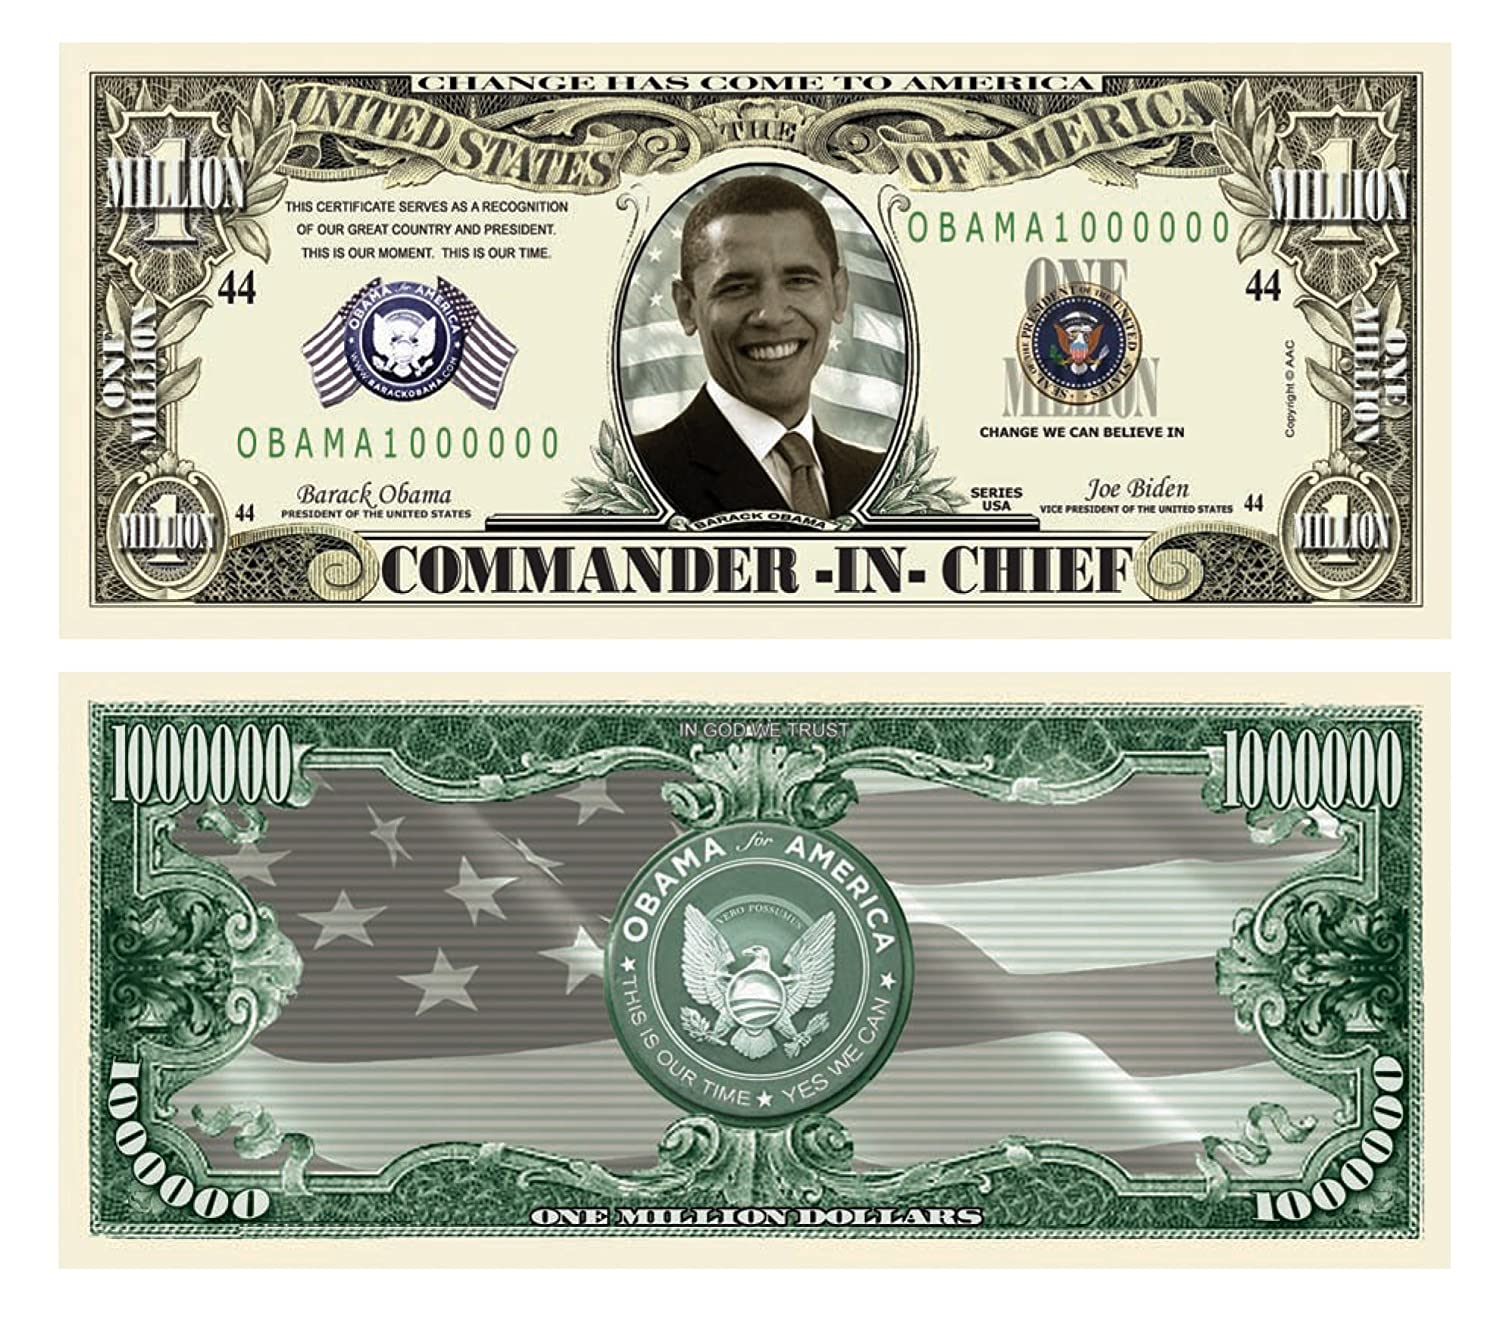 Amazon.com: Obama 44th President Collectors Presidential One Million Dollar  Bill in Protector: Toys & Games